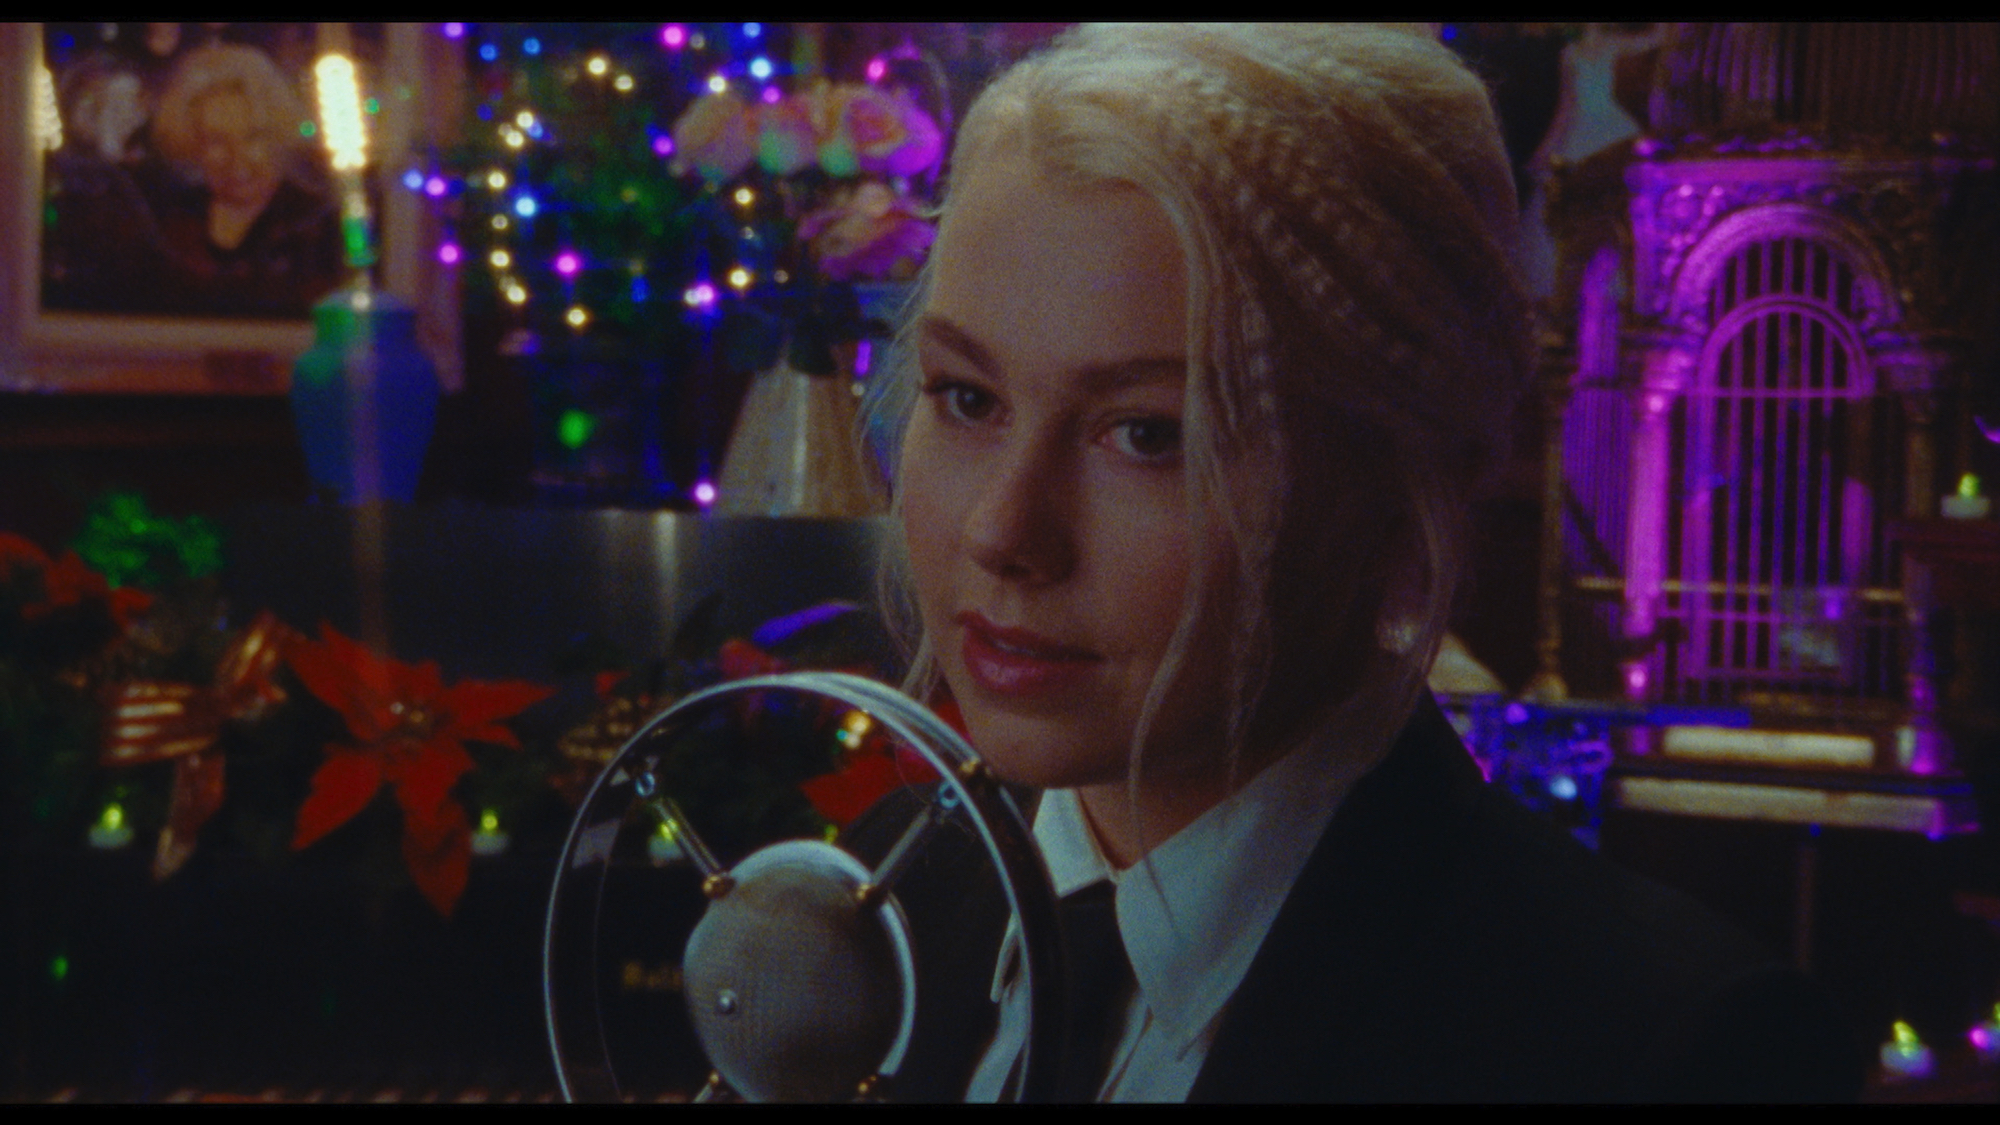 Phoebe Bridgers during her performance on 'THE TONIGHT SHOW STARRING JIMMY FALLON' on Dec. 2, 2020